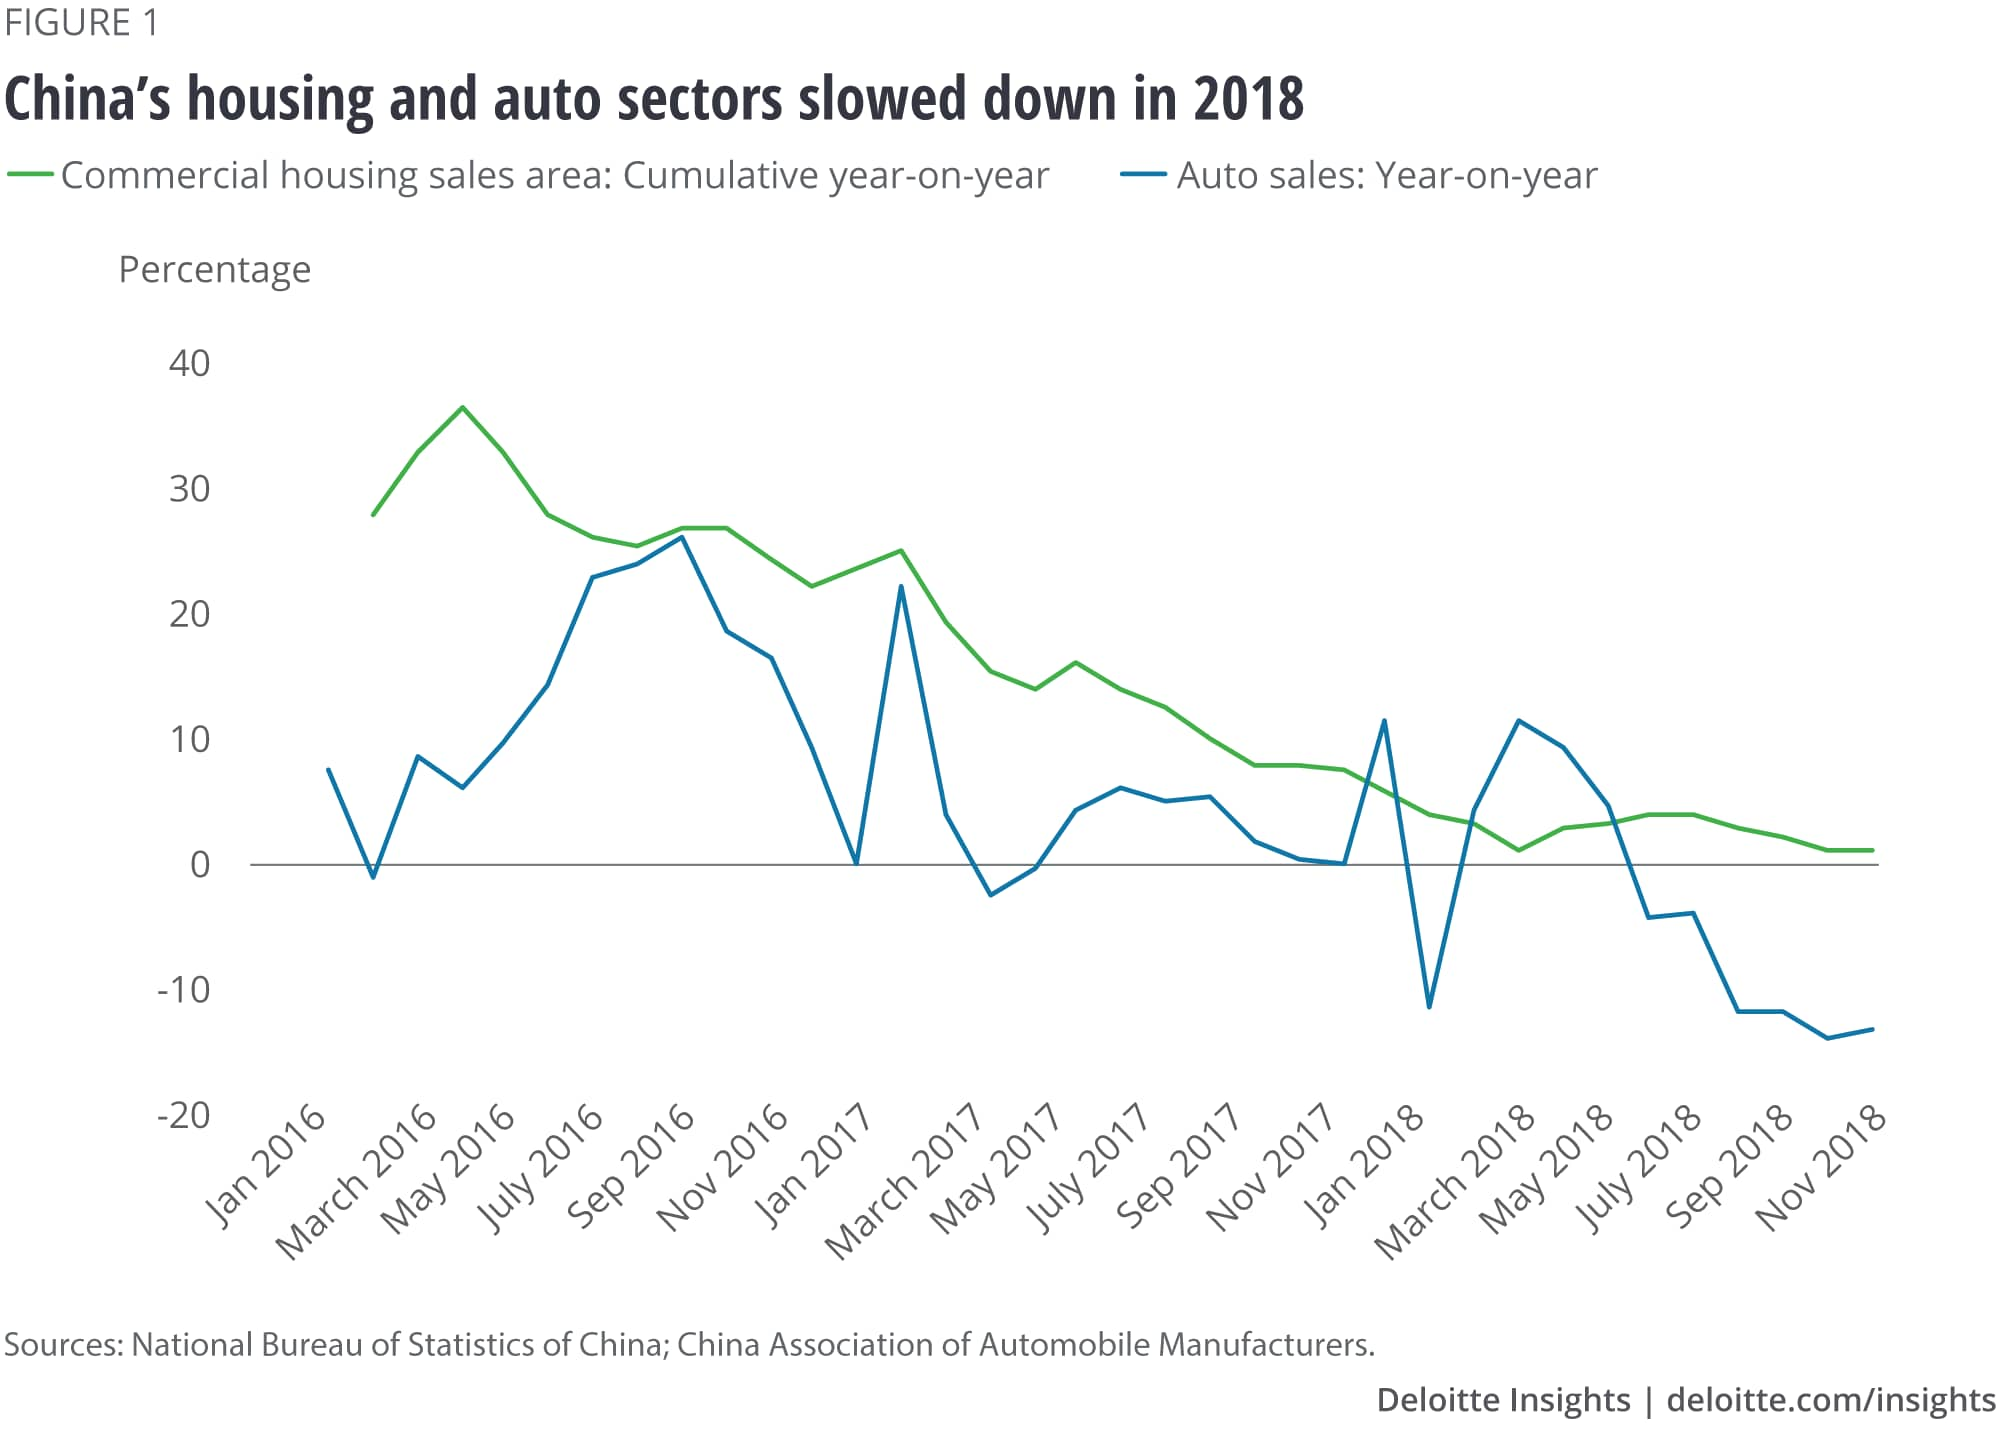 China's housing and auto sectors slowed down in 2018